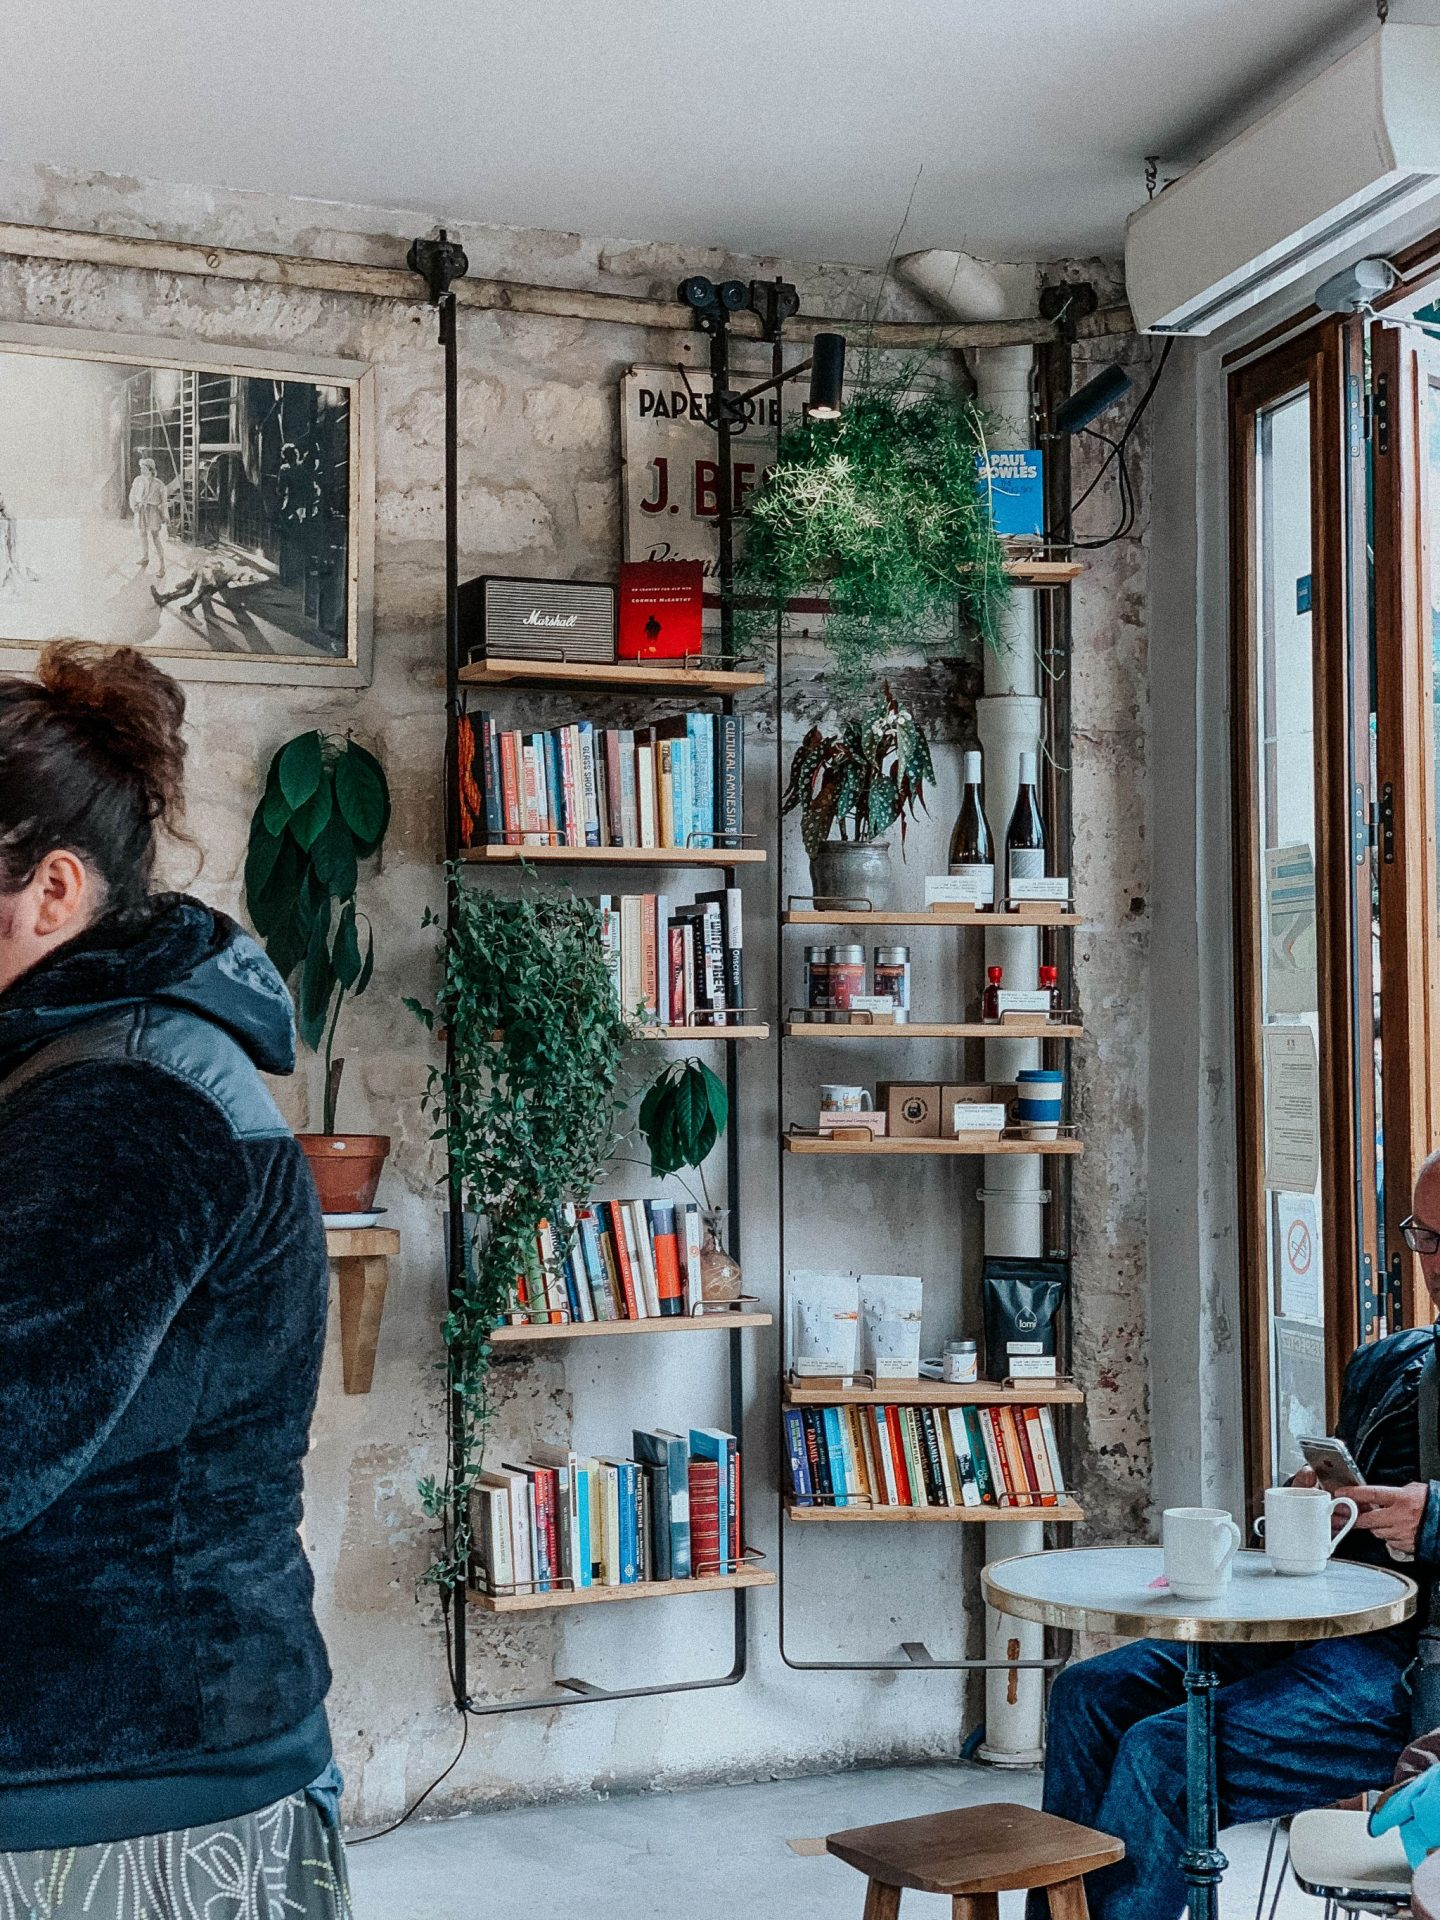 Where to get coffee in Paris